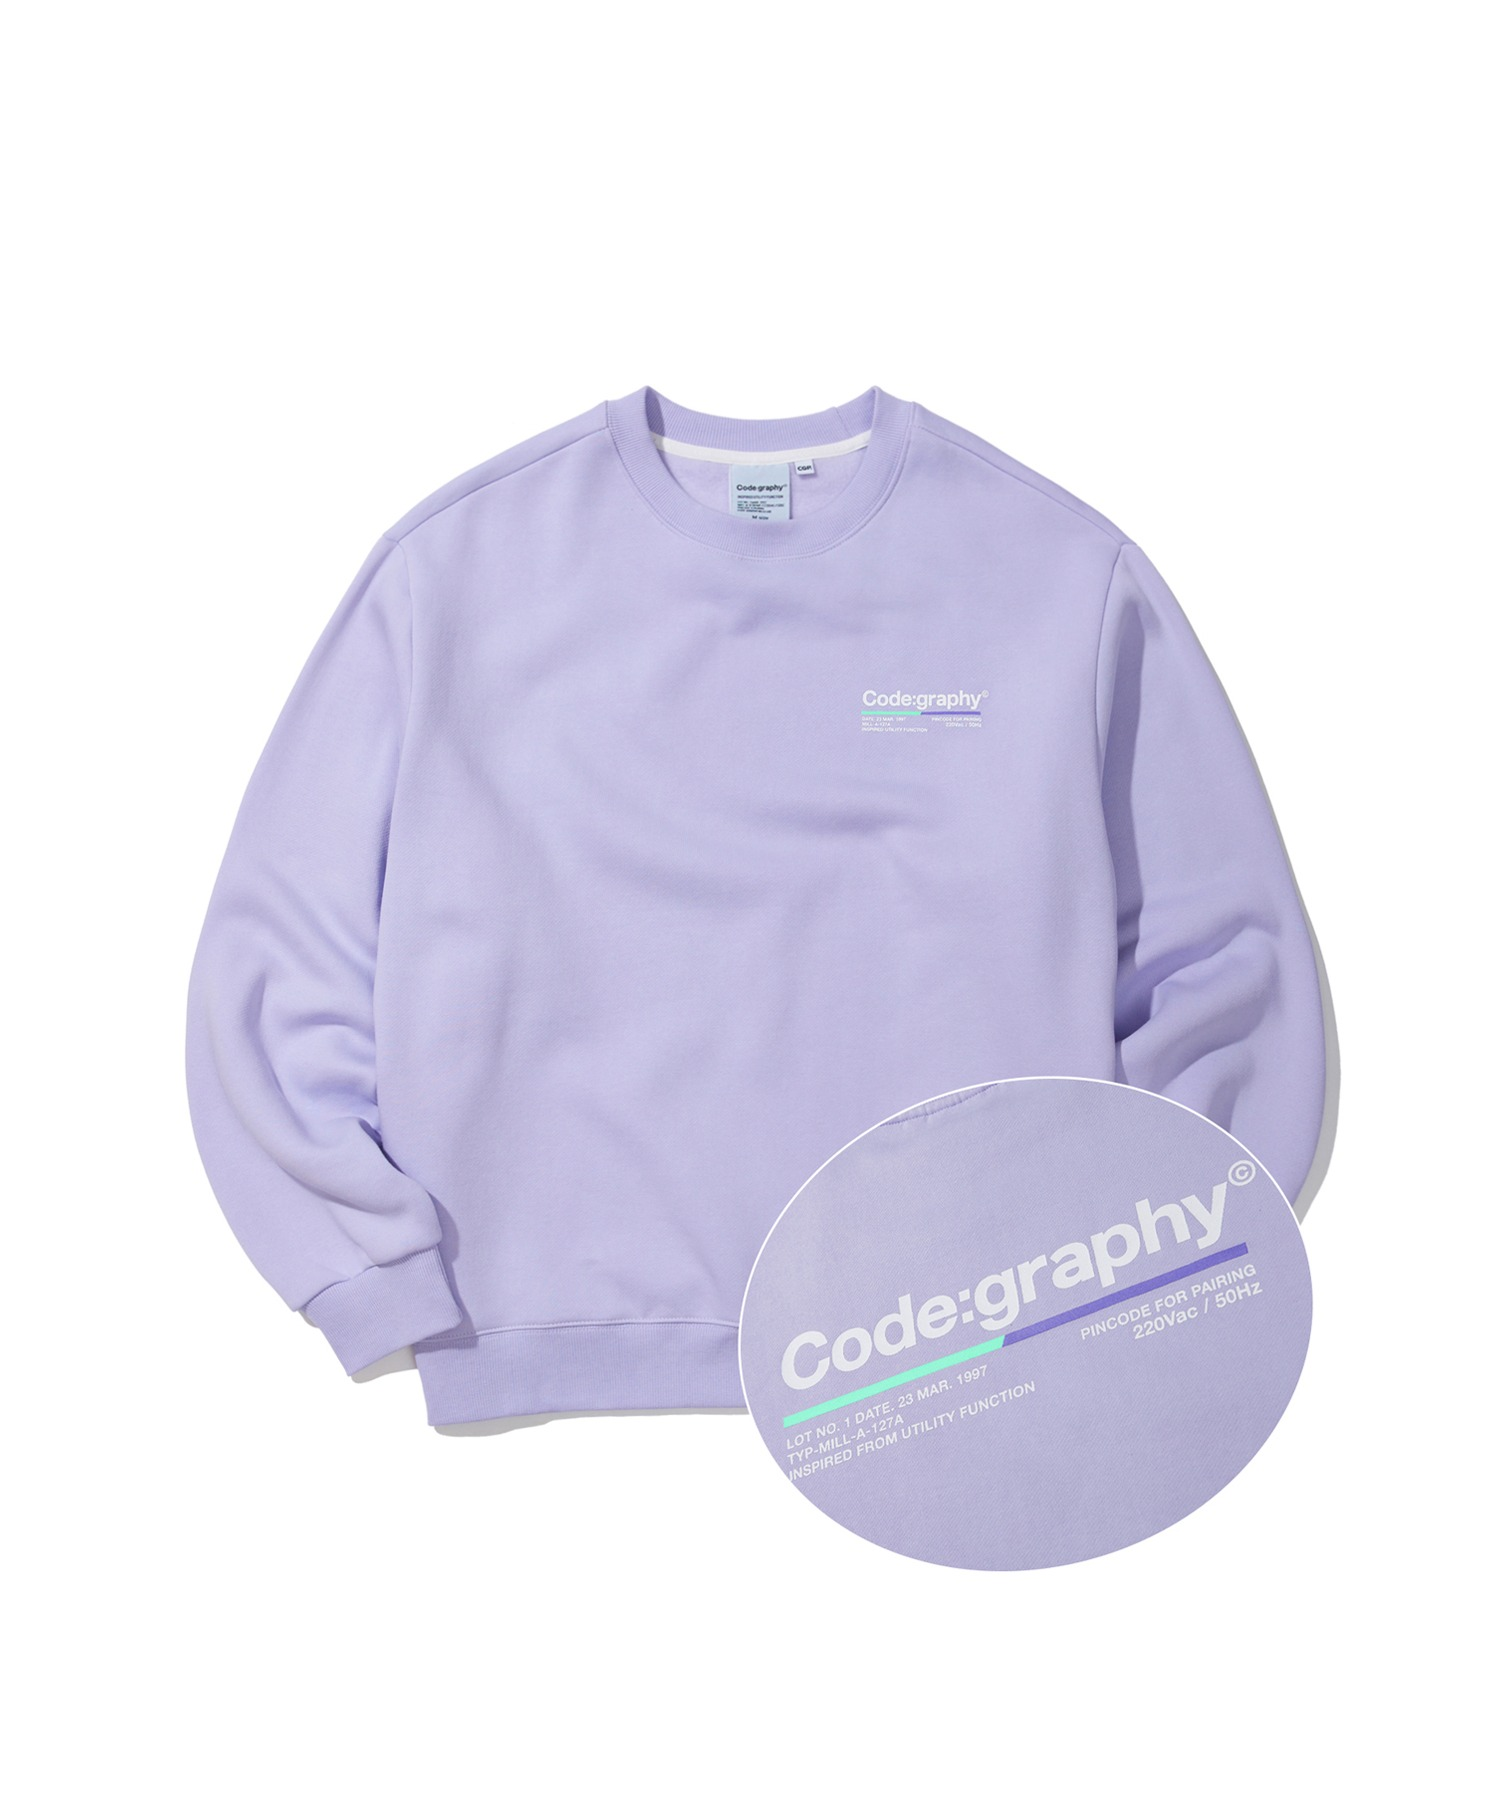 COLOR CHIP LOGO CREWNECK - LIL